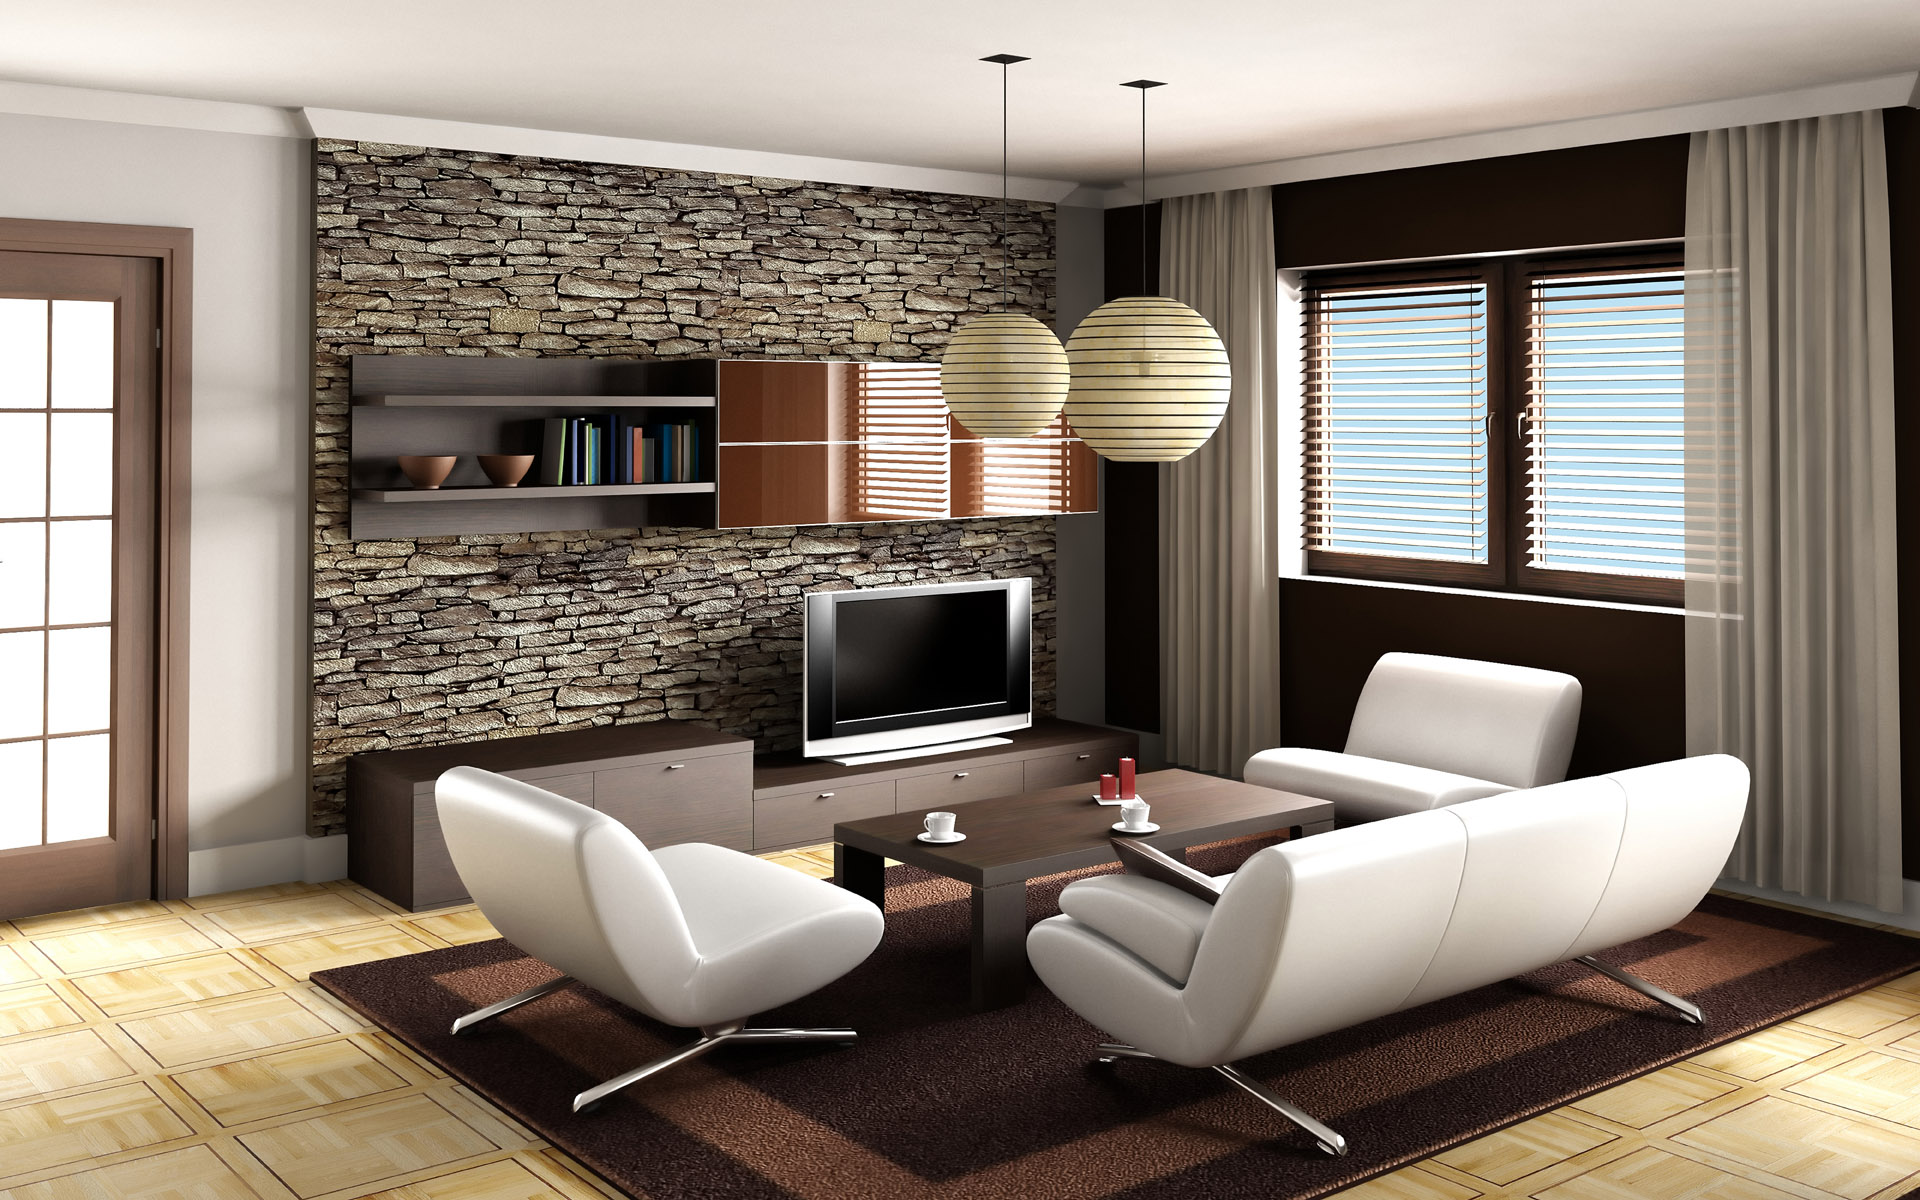 Decorate Living Room 7 tips to decorate your living room worthily